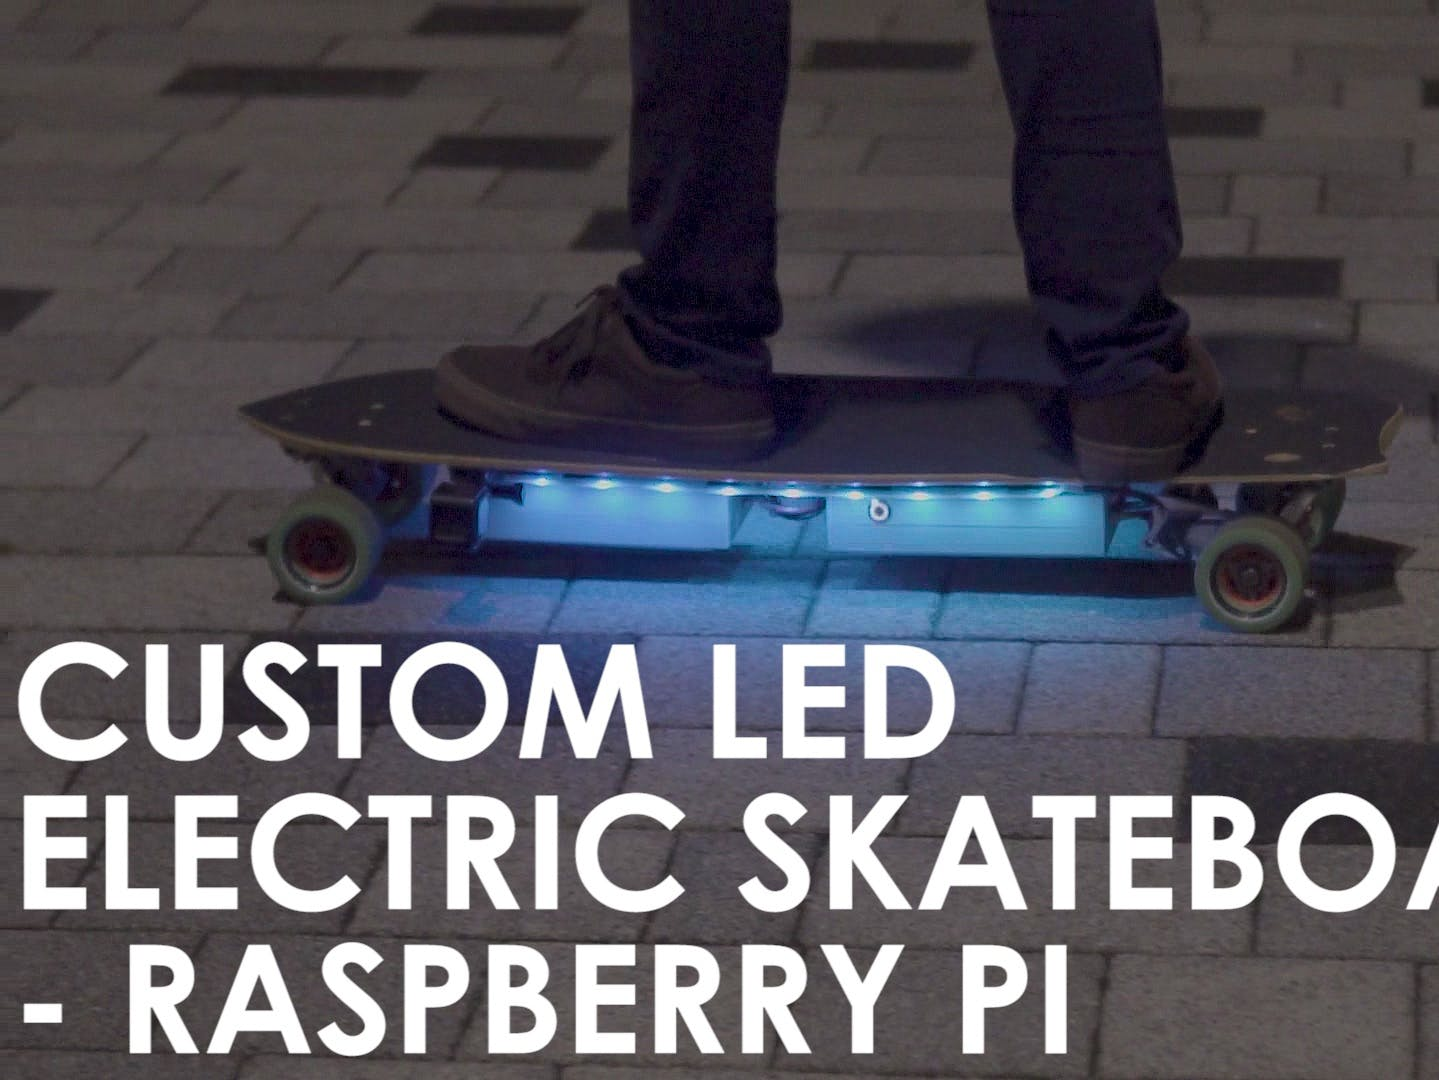 Custom LED Lights on DIY Electric Skateboard - Raspberry Pi